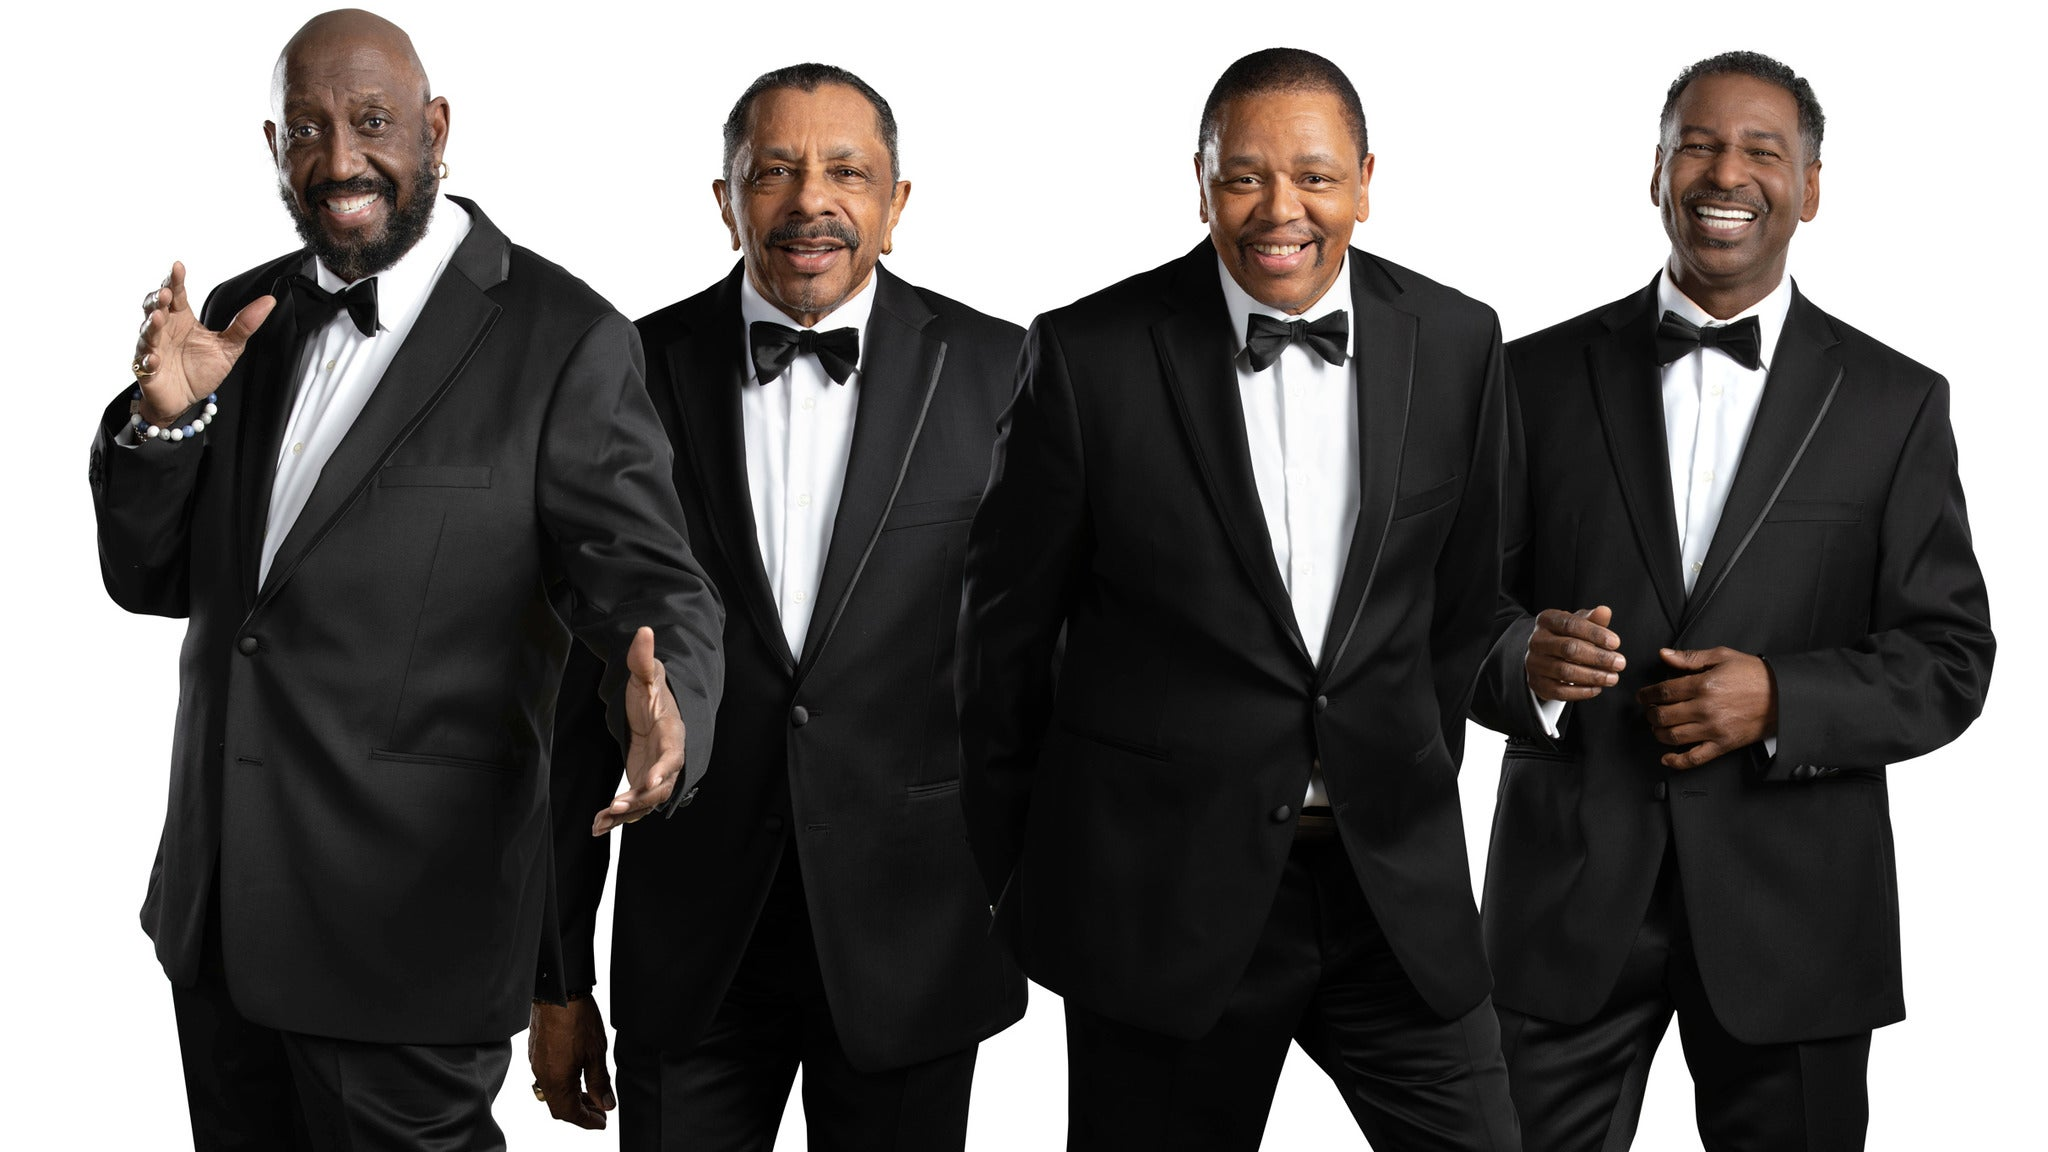 Main image for event titled The Temptations with Special Guests The Four Tops